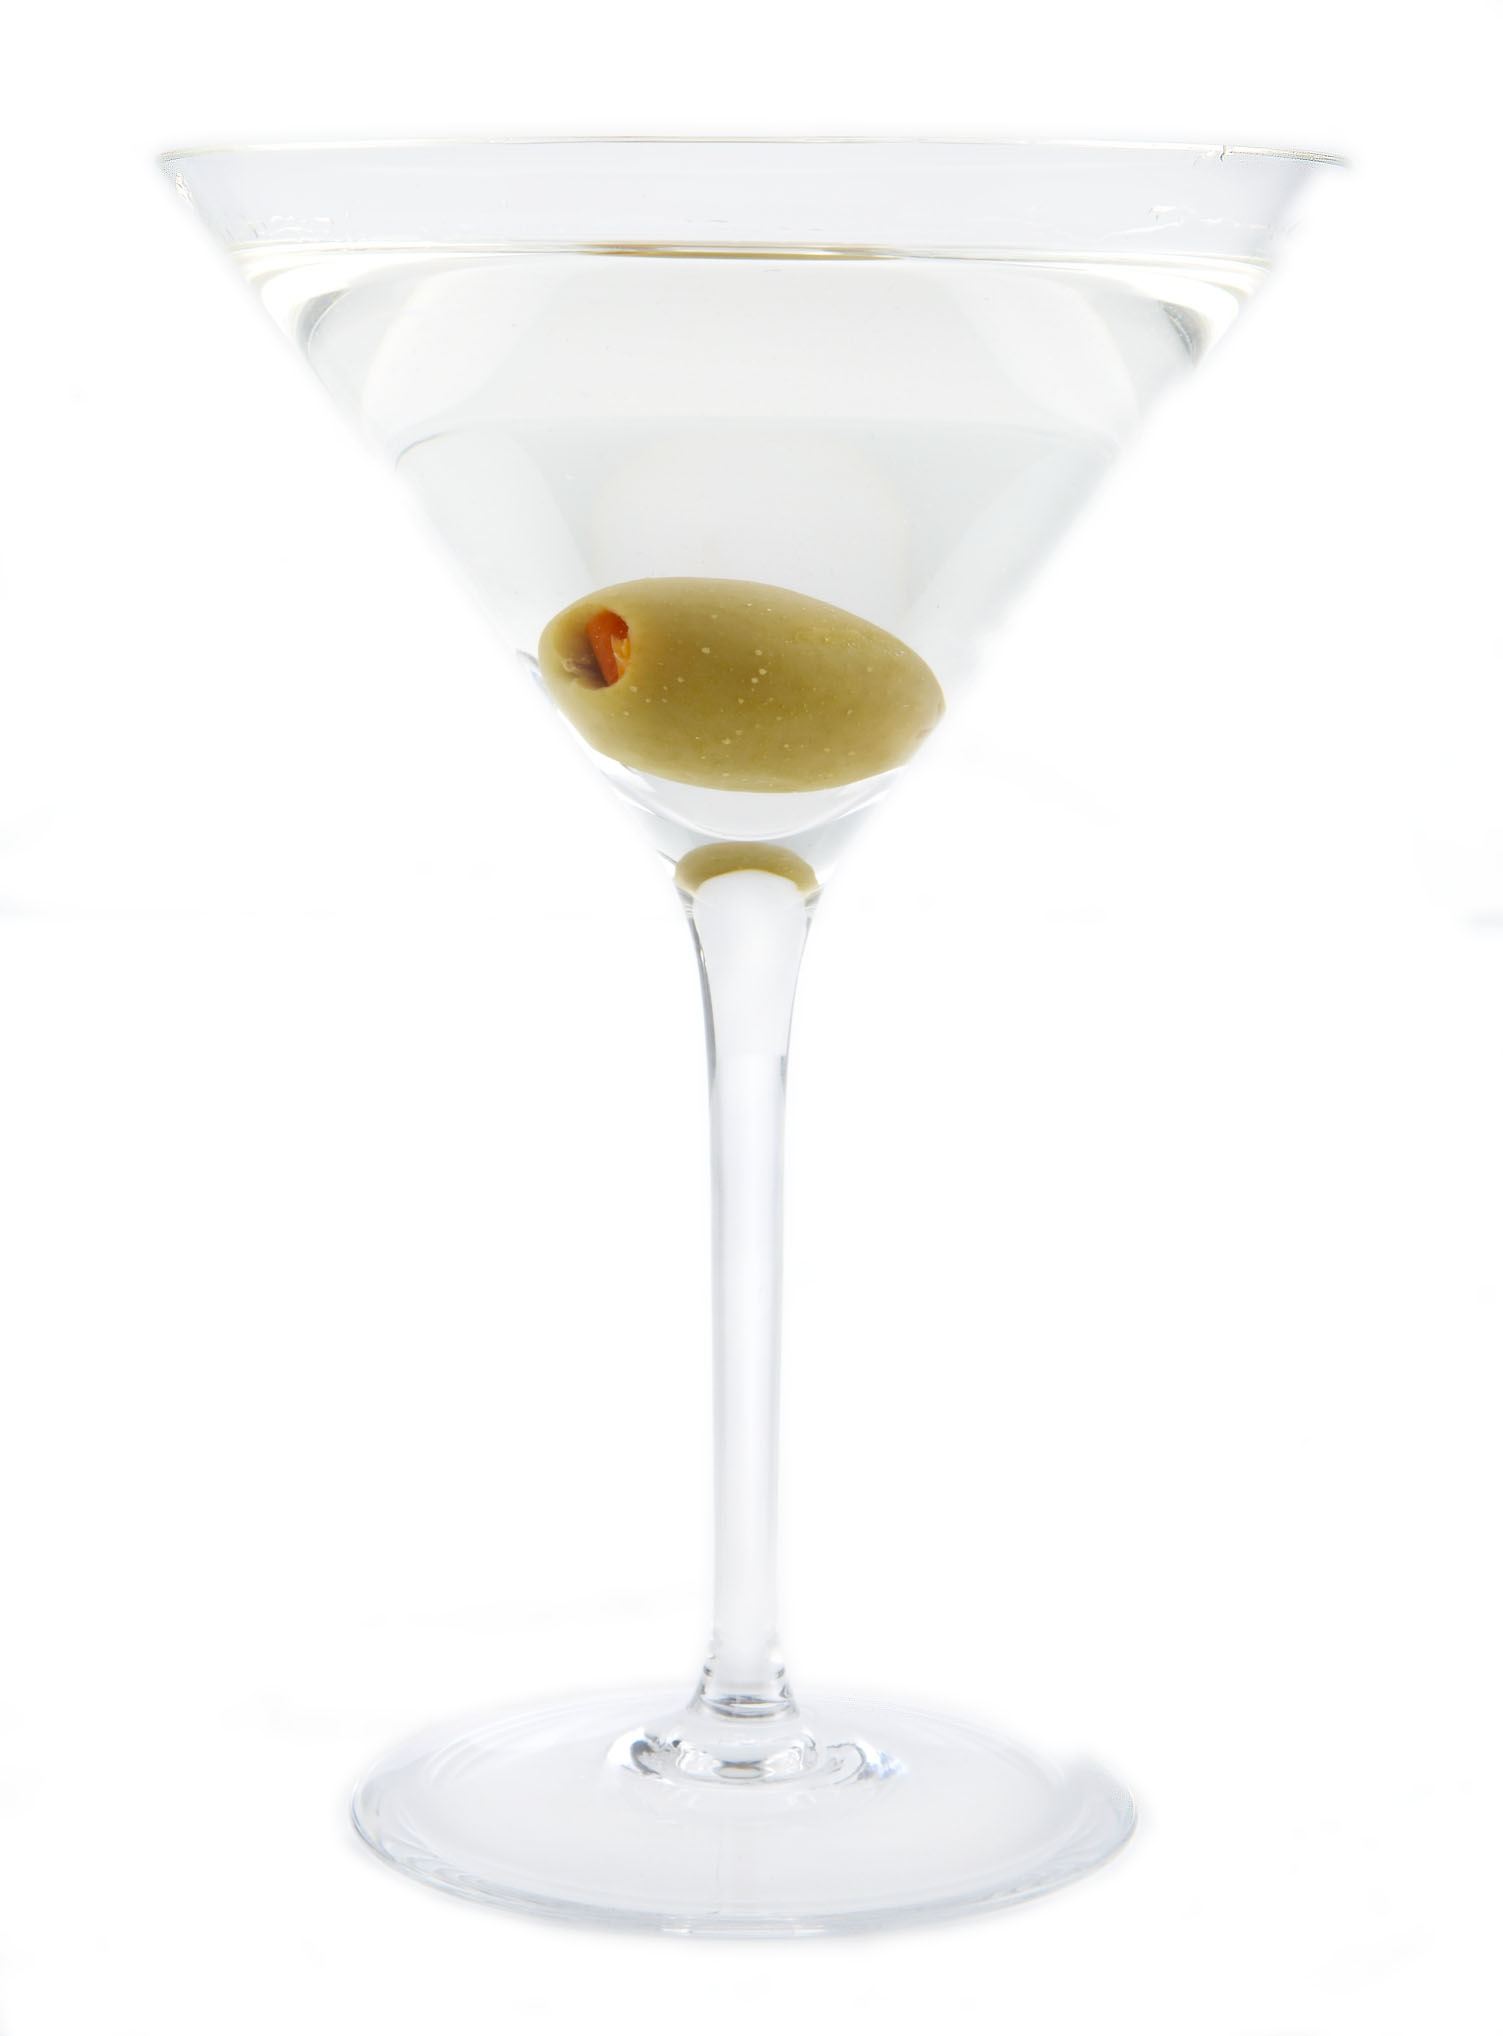 Best martini recipe how to make the perfect martini for Best gin for martini recipes